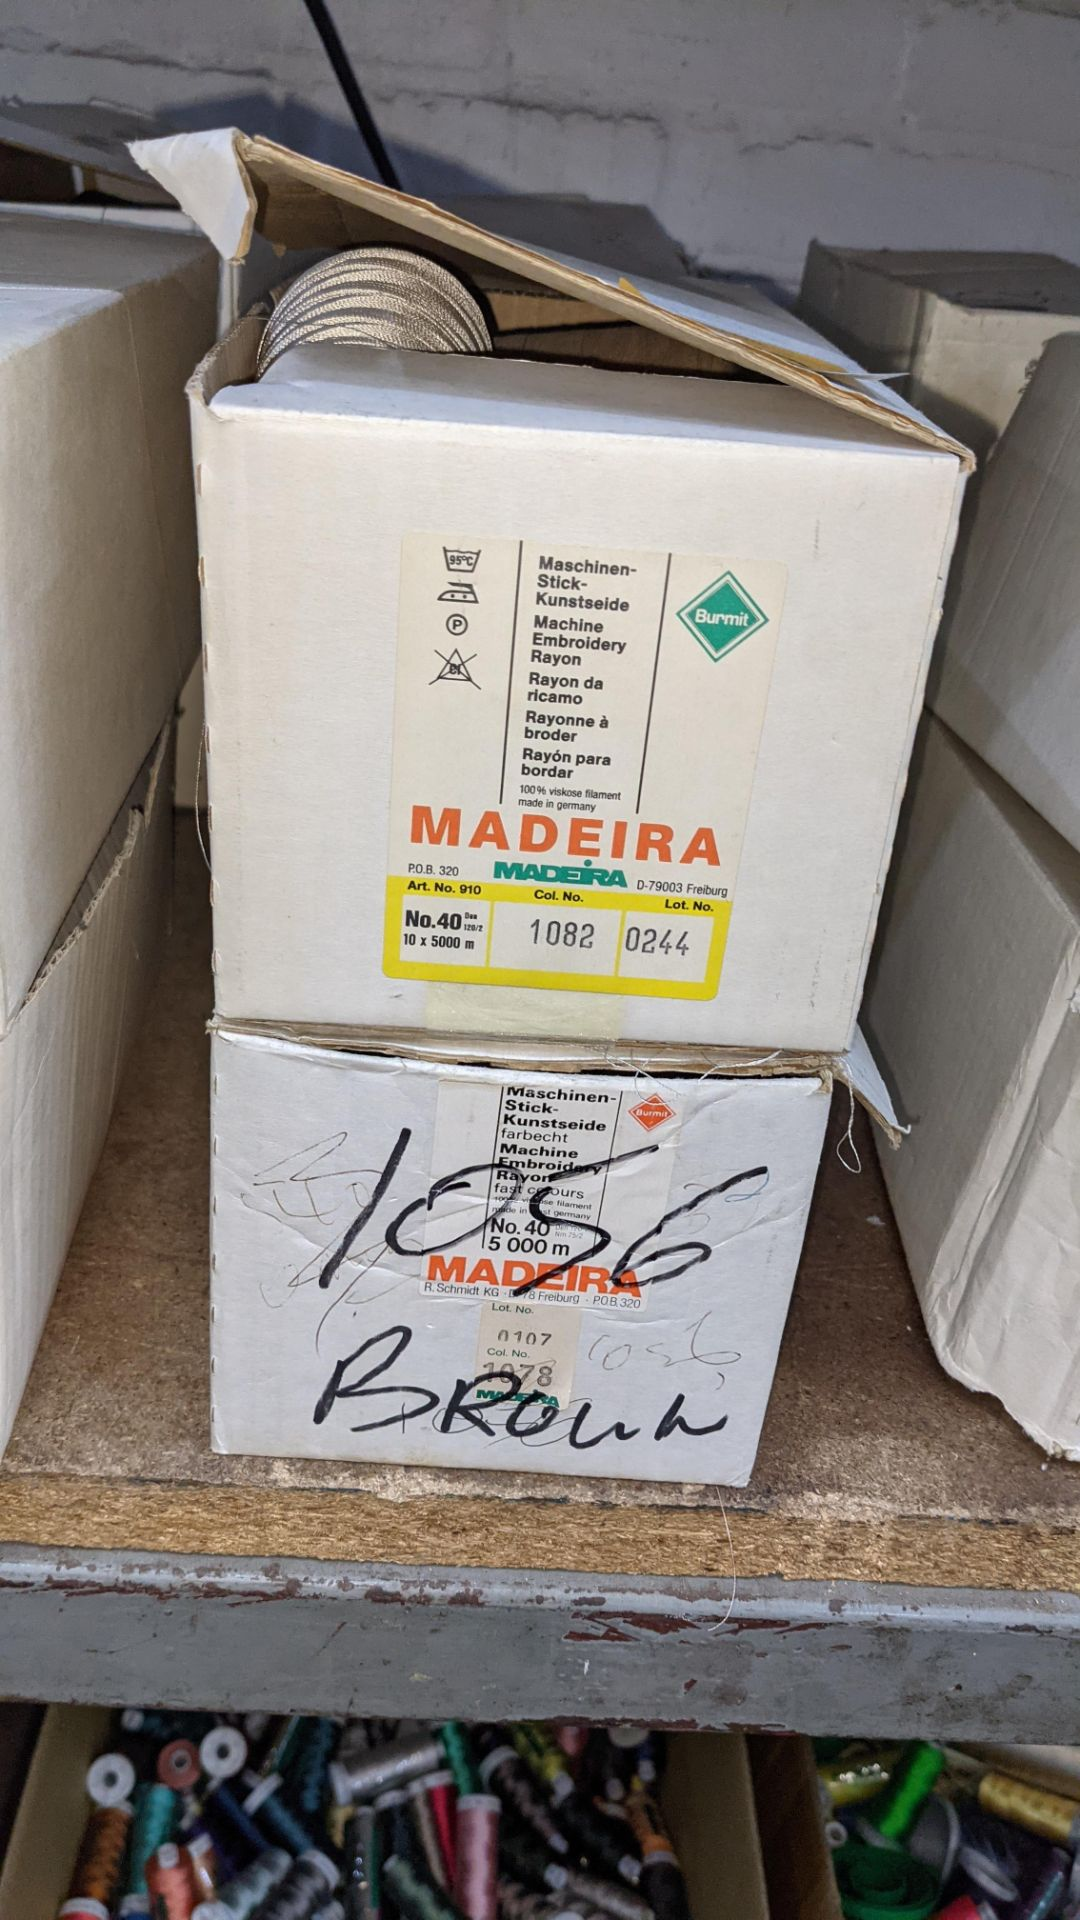 8 boxes of Madeira Burmit No. 40 rayon embroidery thread - Image 4 of 11